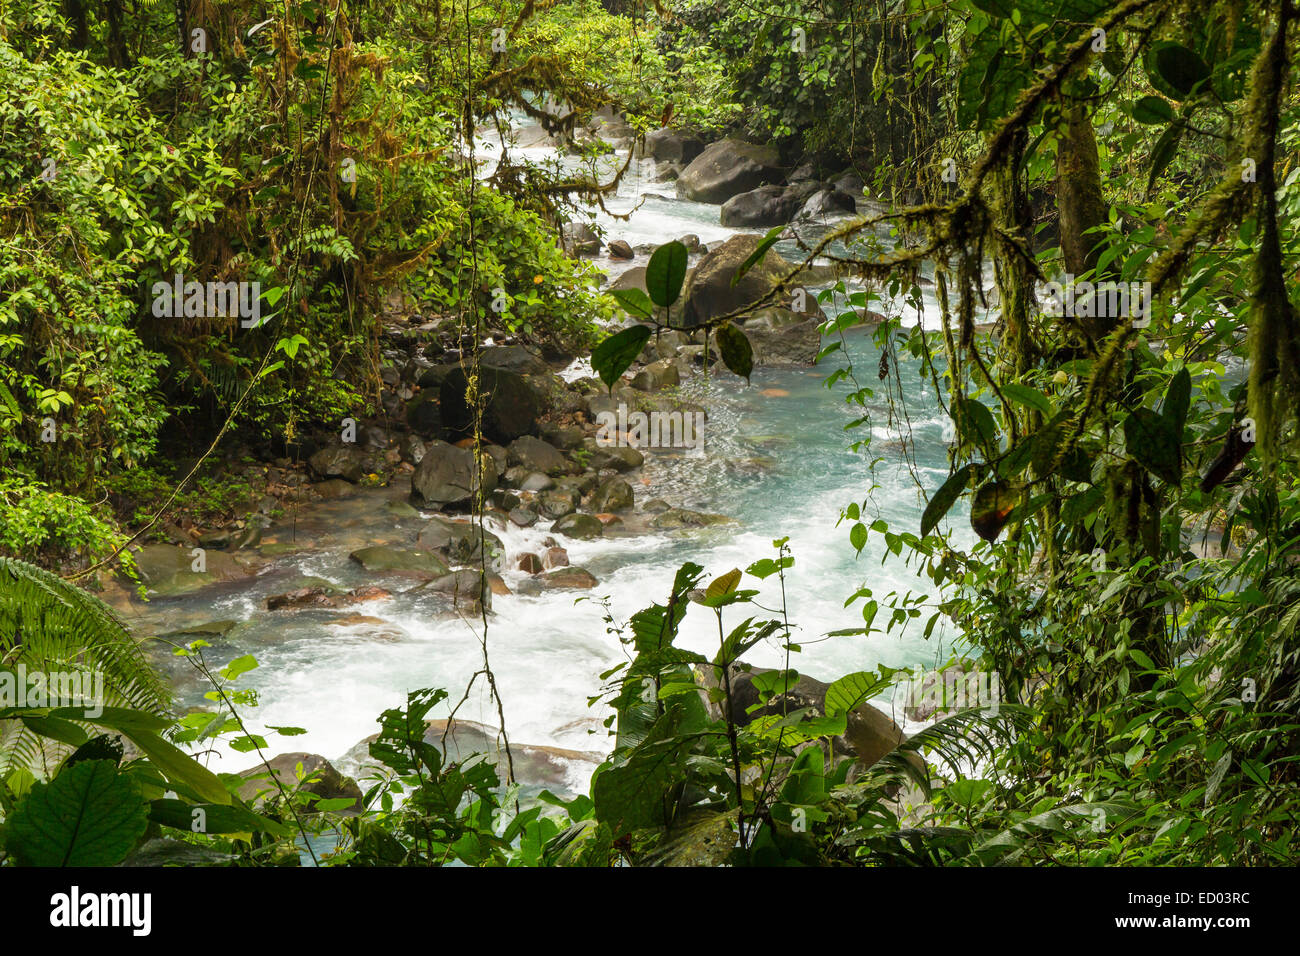 The cerulean blue waters of the Rio Celeste in the rainforest in Volcan Tenorio National Park, Costa Rica. - Stock Image